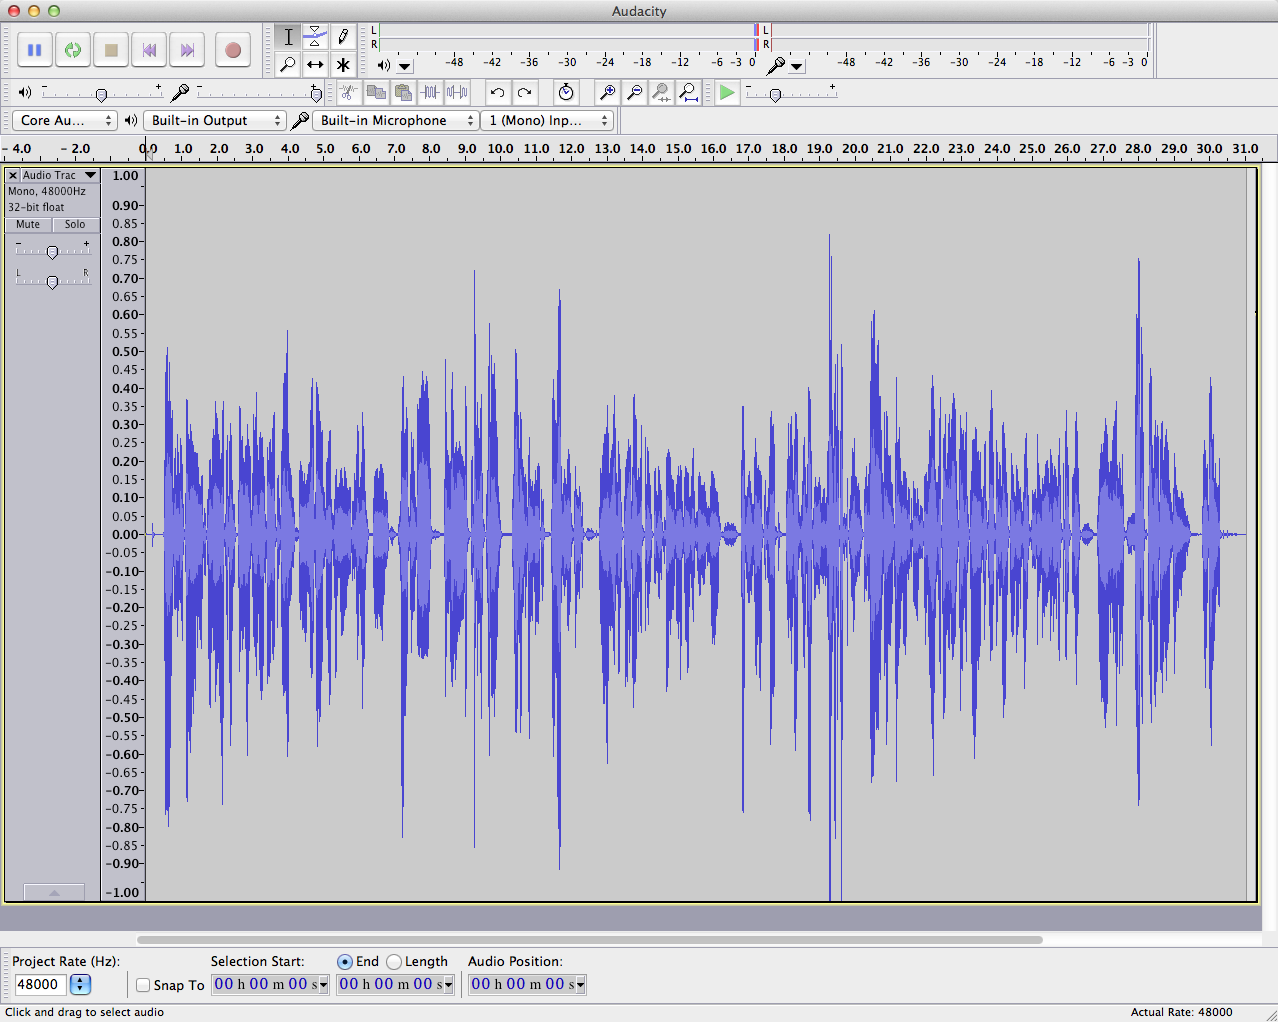 Audacity: Trim Peaks to Boost Loudness (Without Clipping